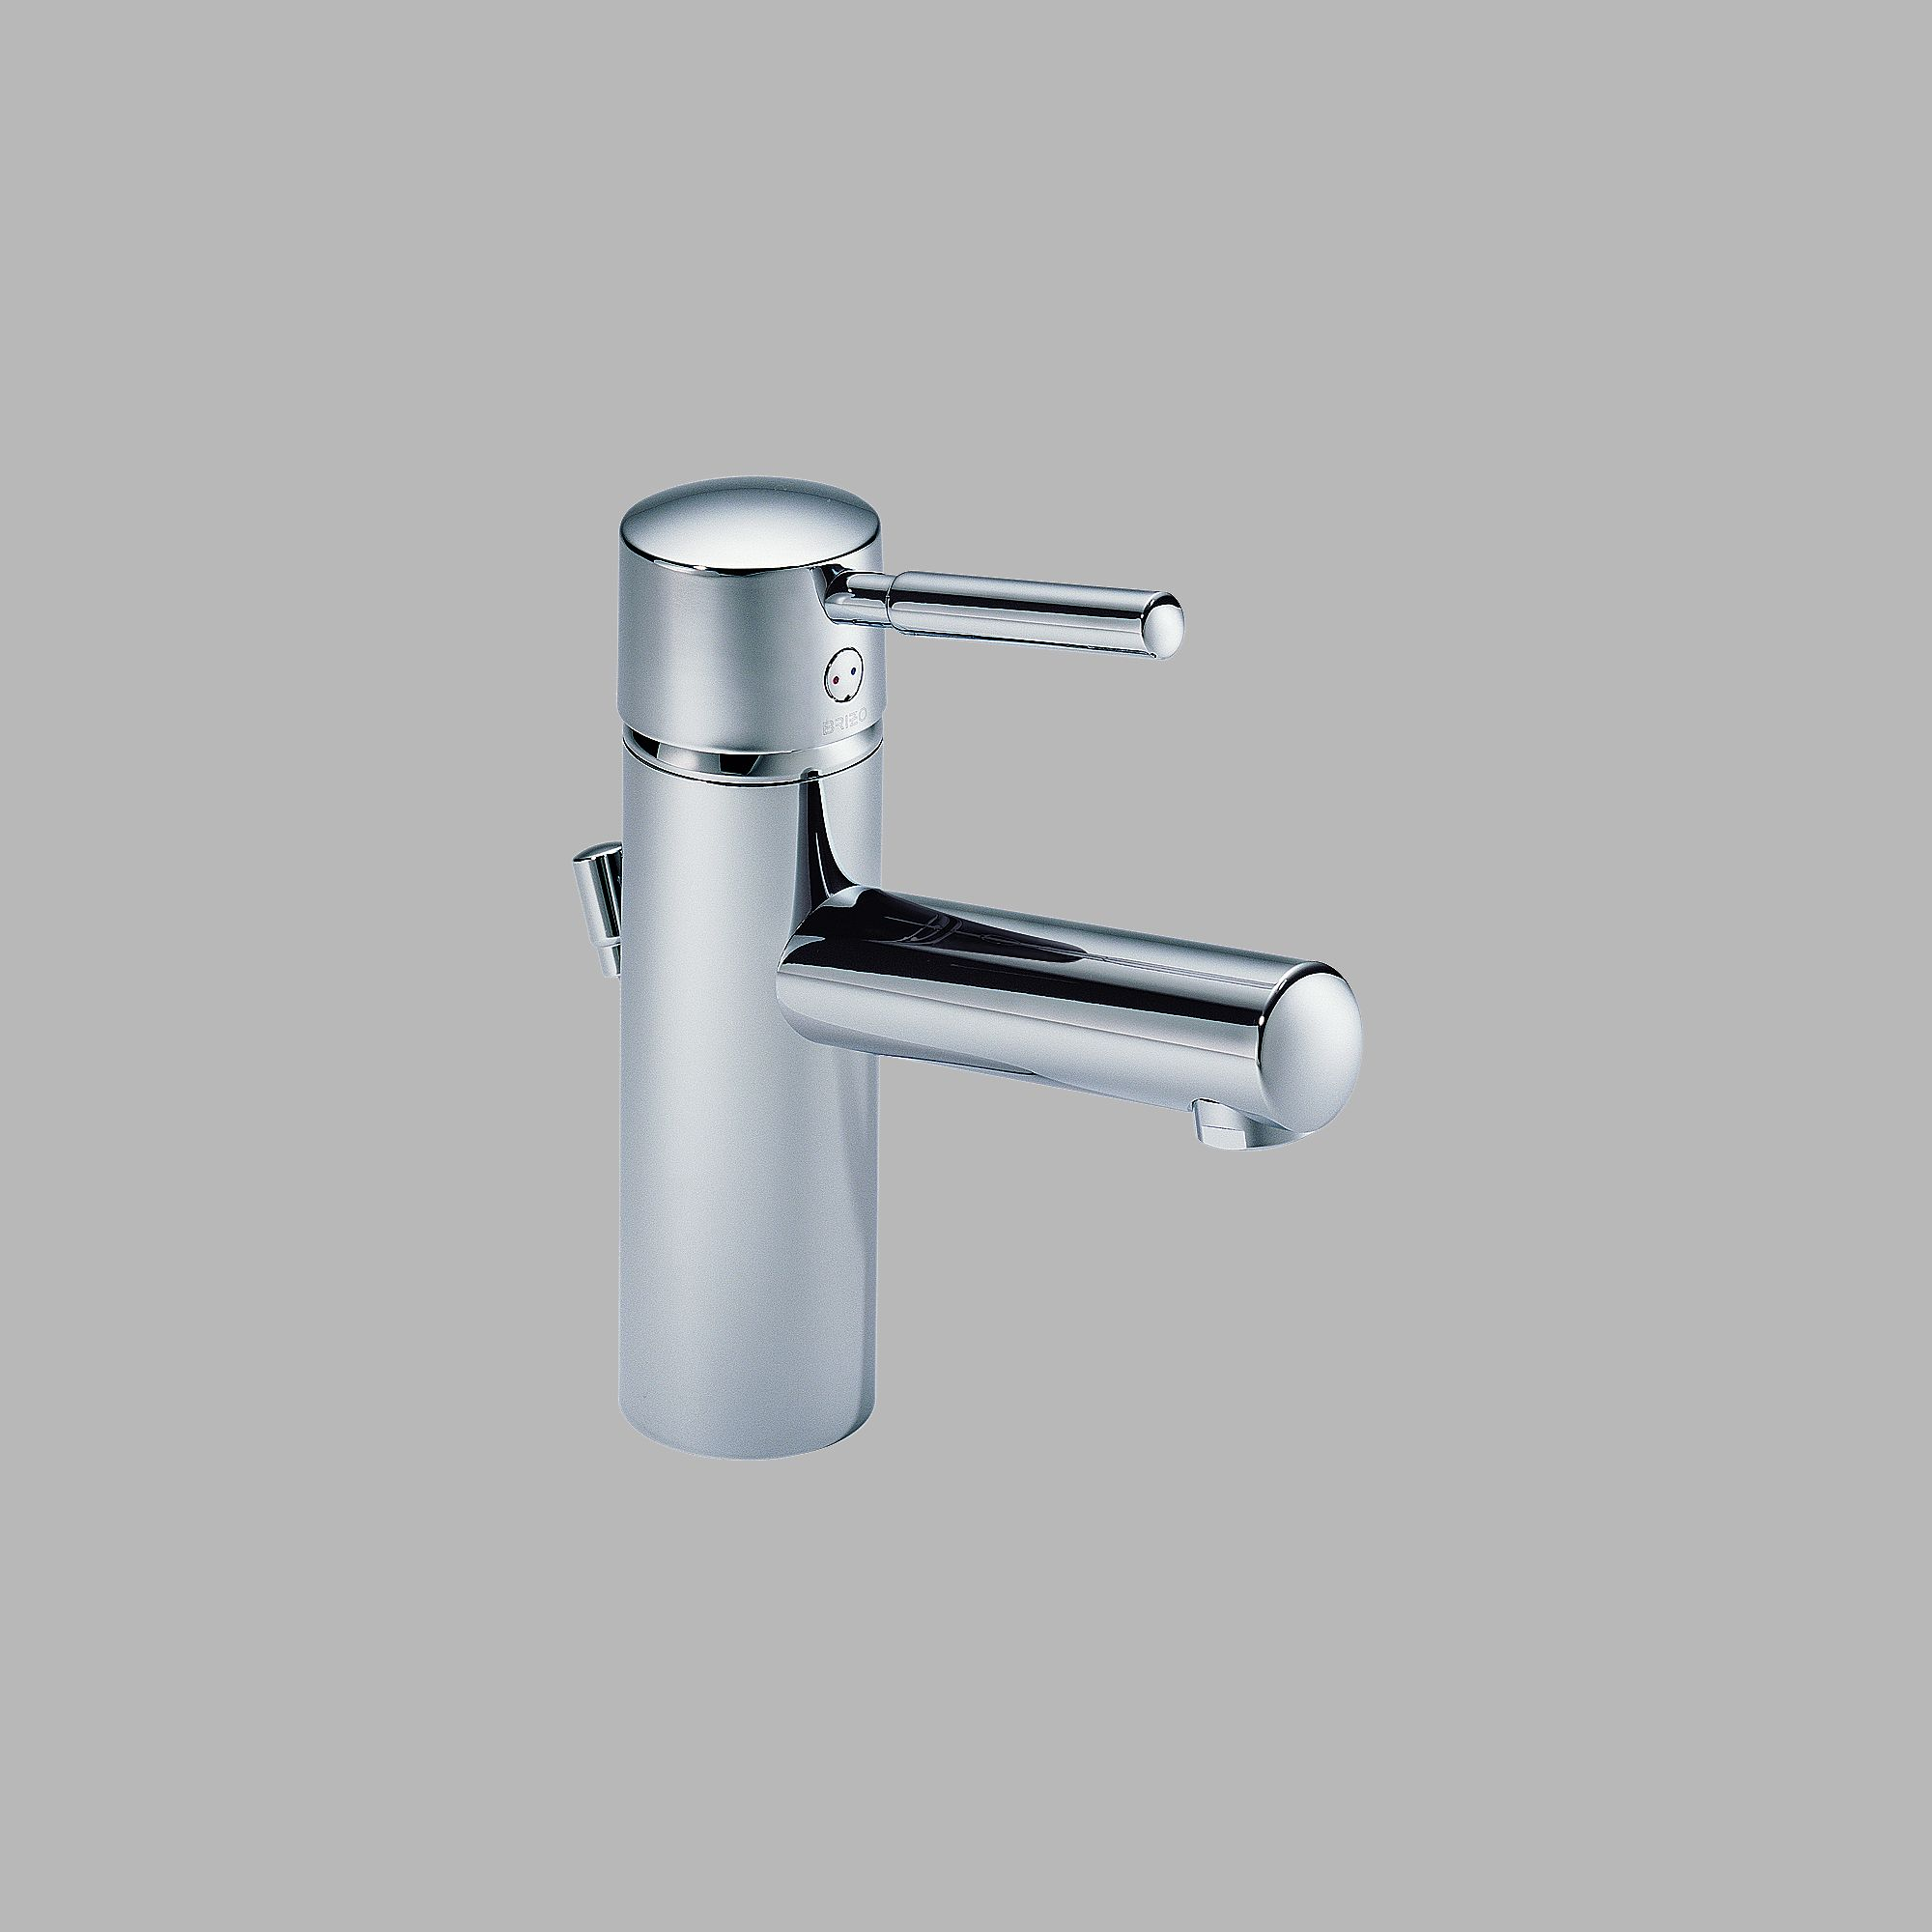 65014 Brizo Quiessence Single Handle Single Hole Lavatory Faucet